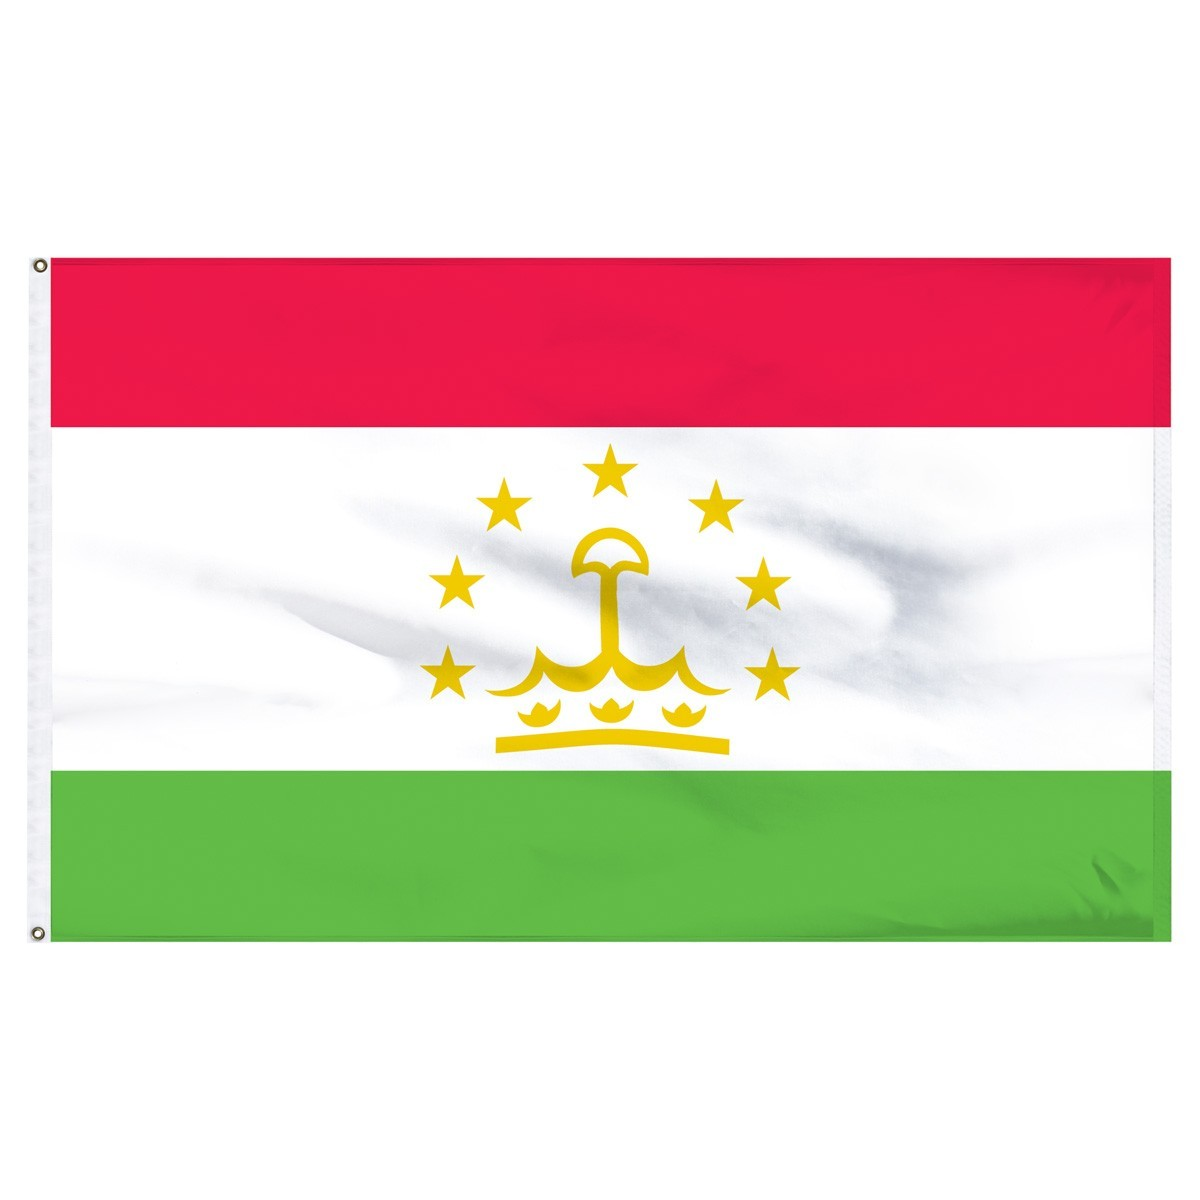 Tajikistan 3' x 5' Outdoor Nylon Flag